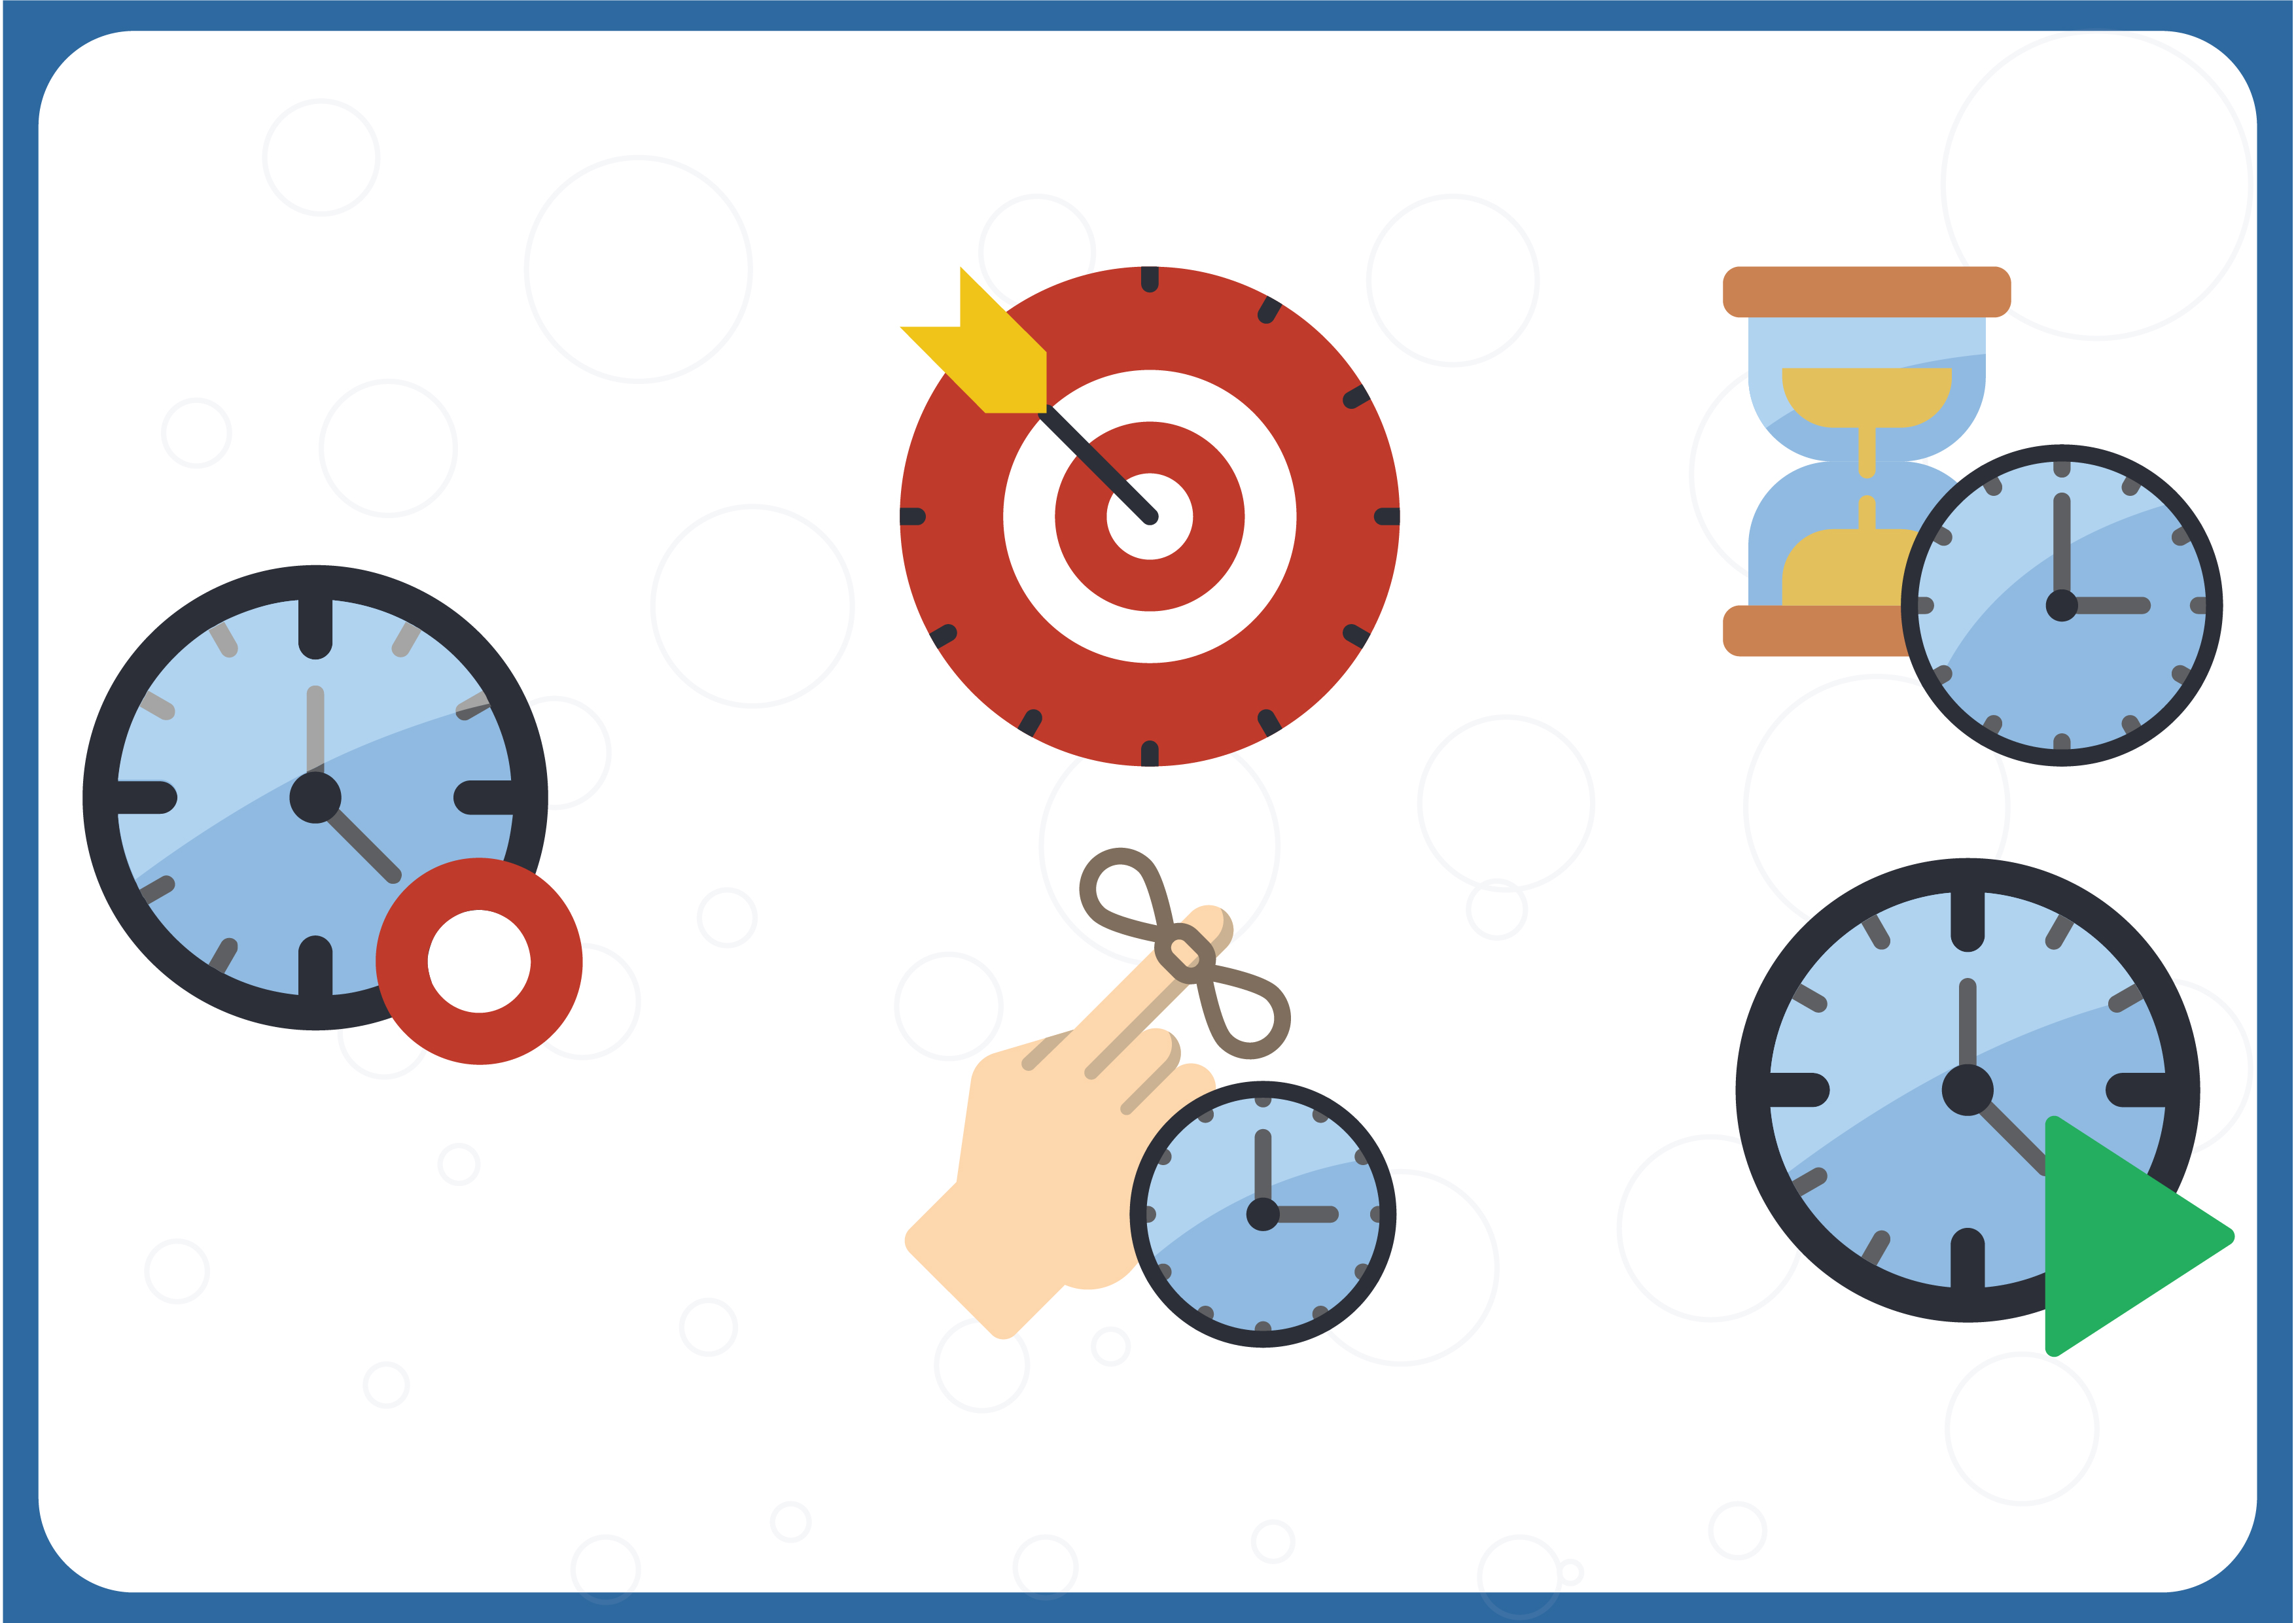 Download Free Time Management Graphic By Colorkhu123 Creative Fabrica for Cricut Explore, Silhouette and other cutting machines.